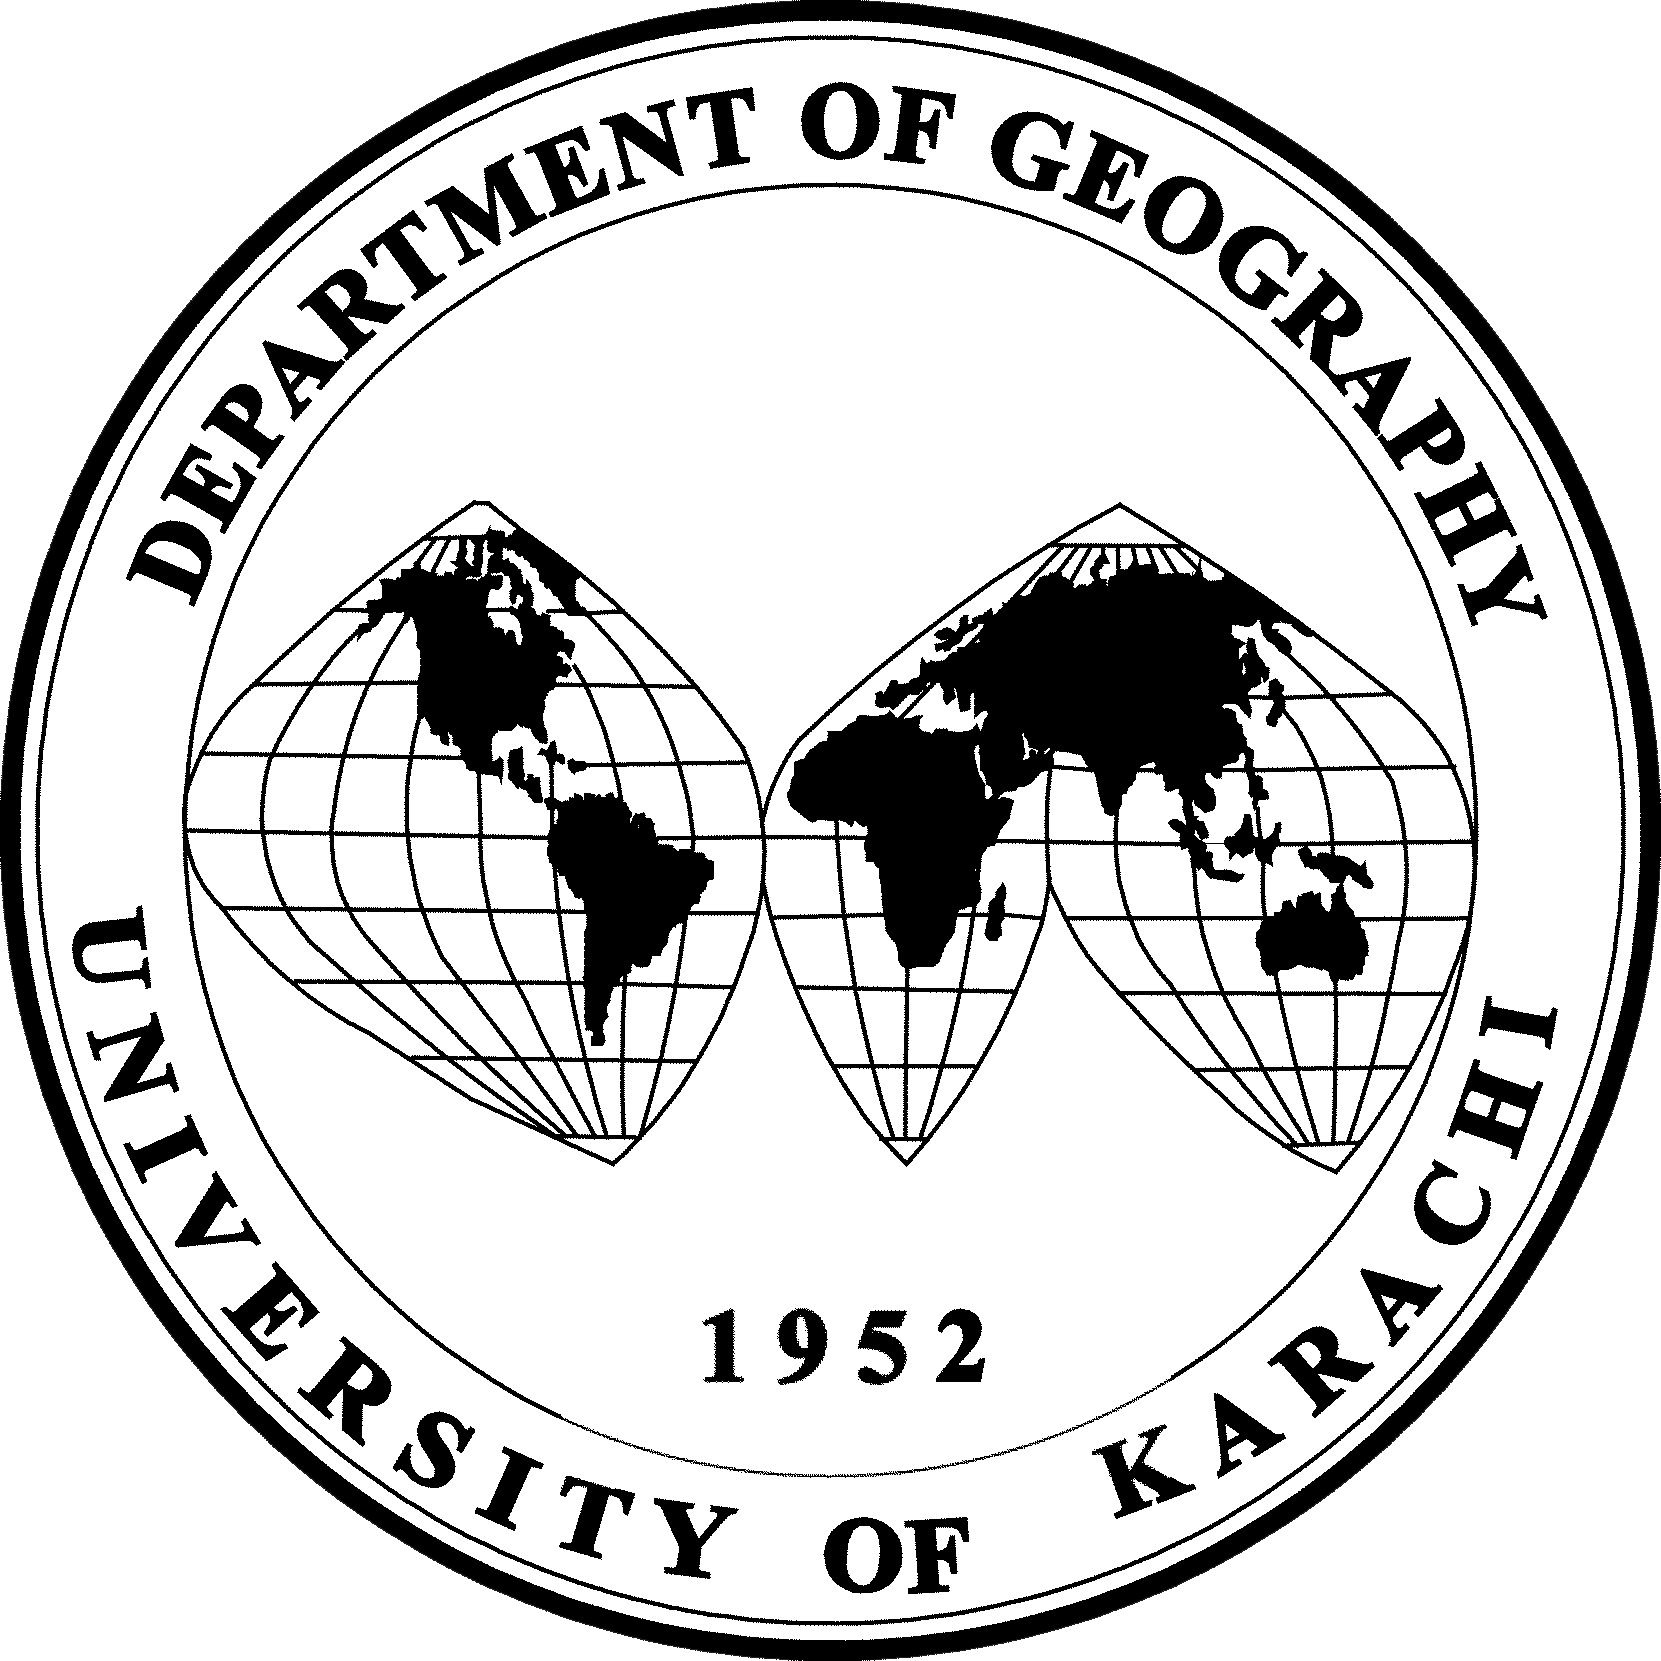 Geography clipart movement geography. Academics ggr uok department